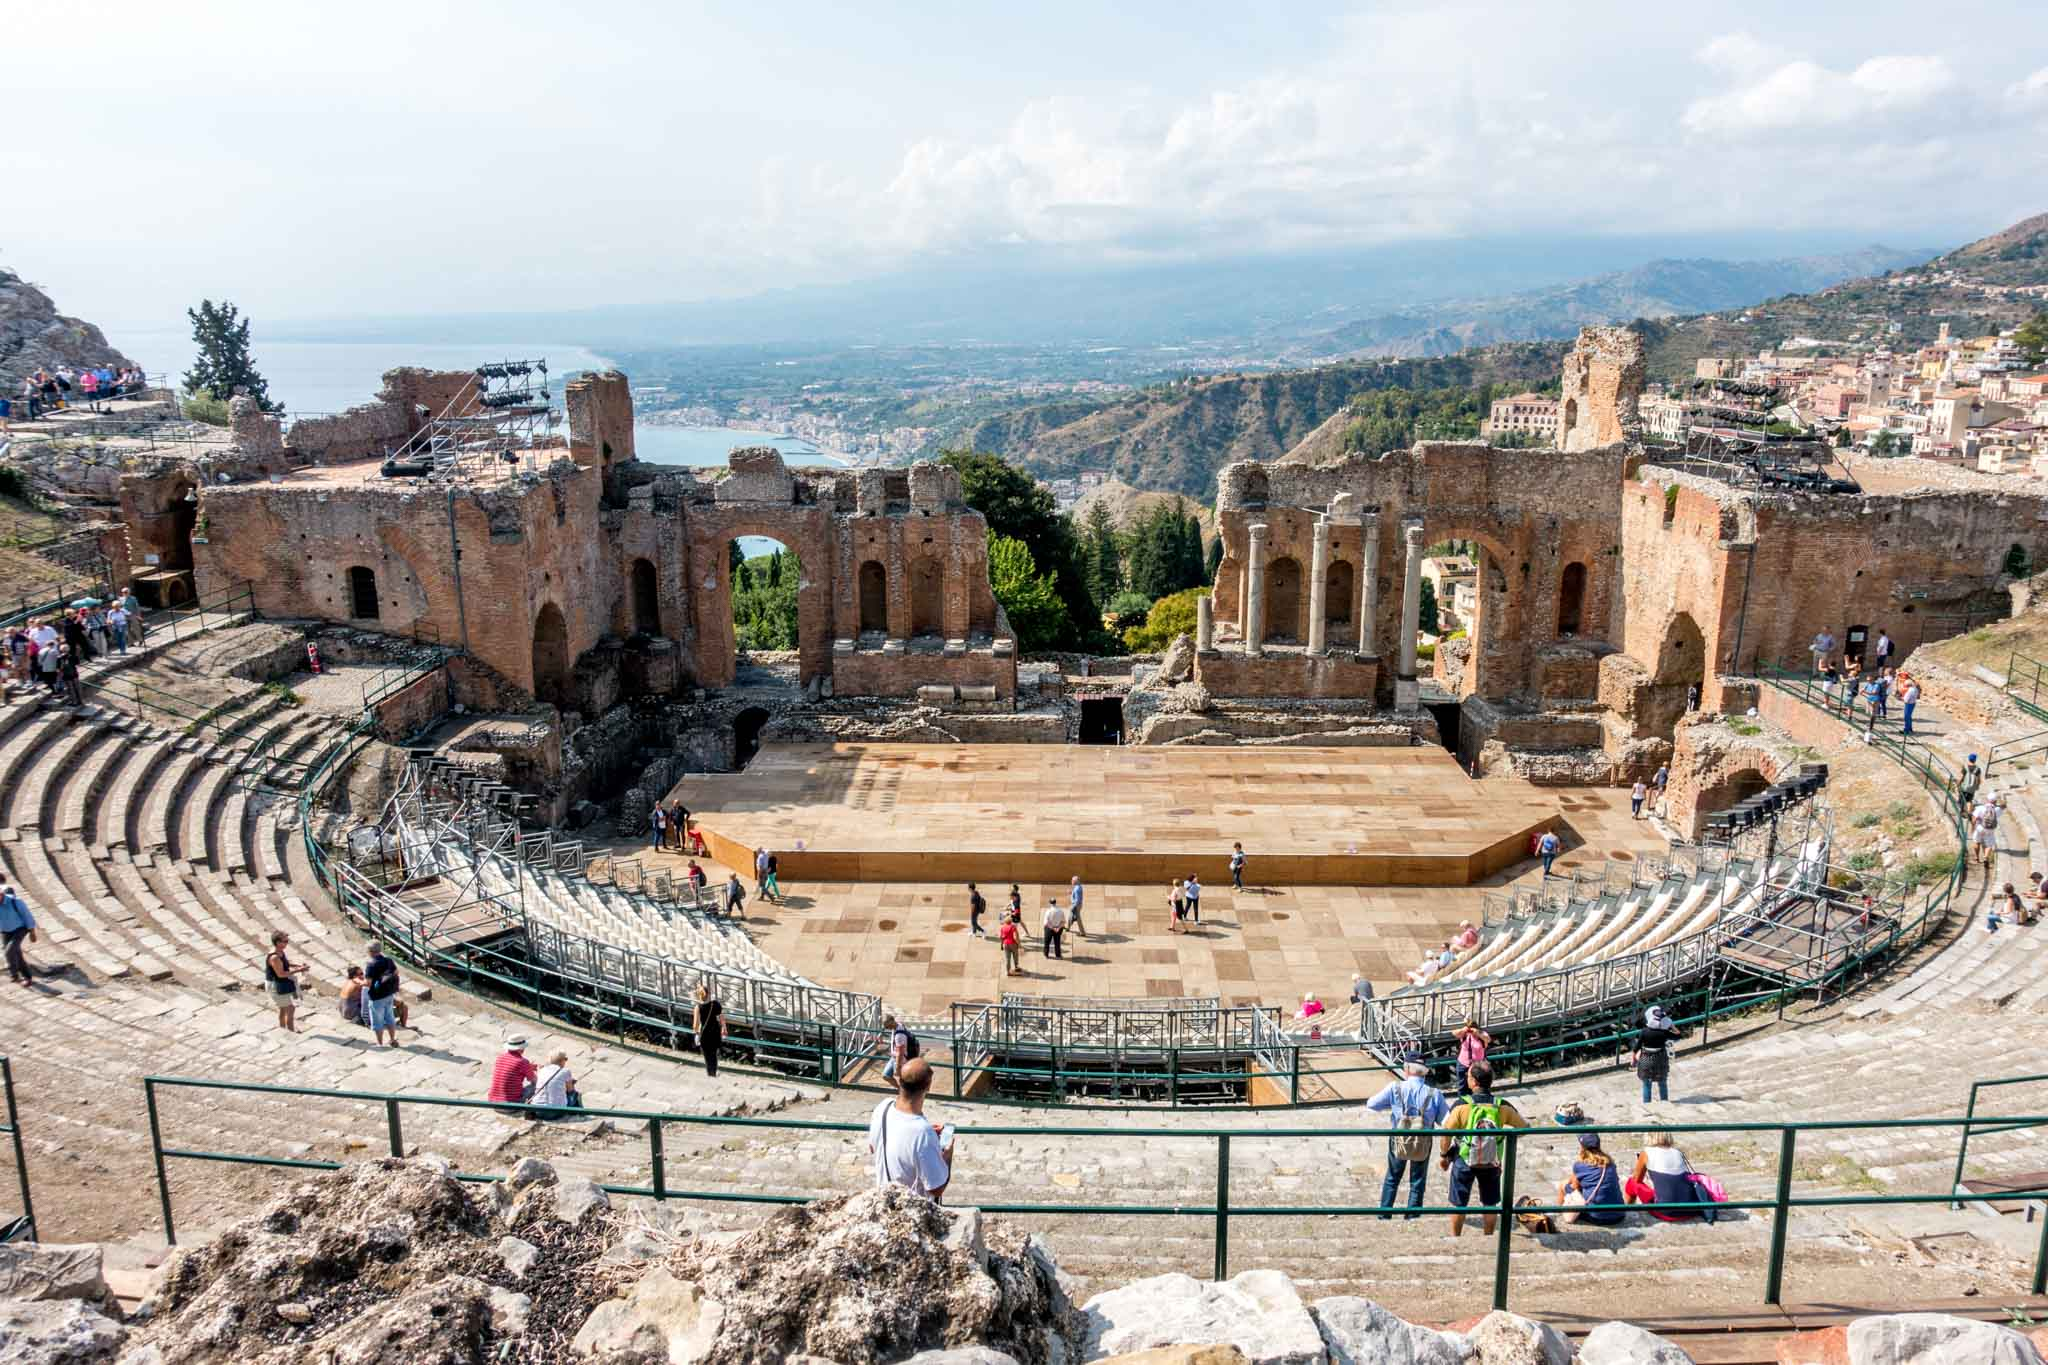 Wondering where to go in Sicily? See the theater of Taormina with one week in Sicily